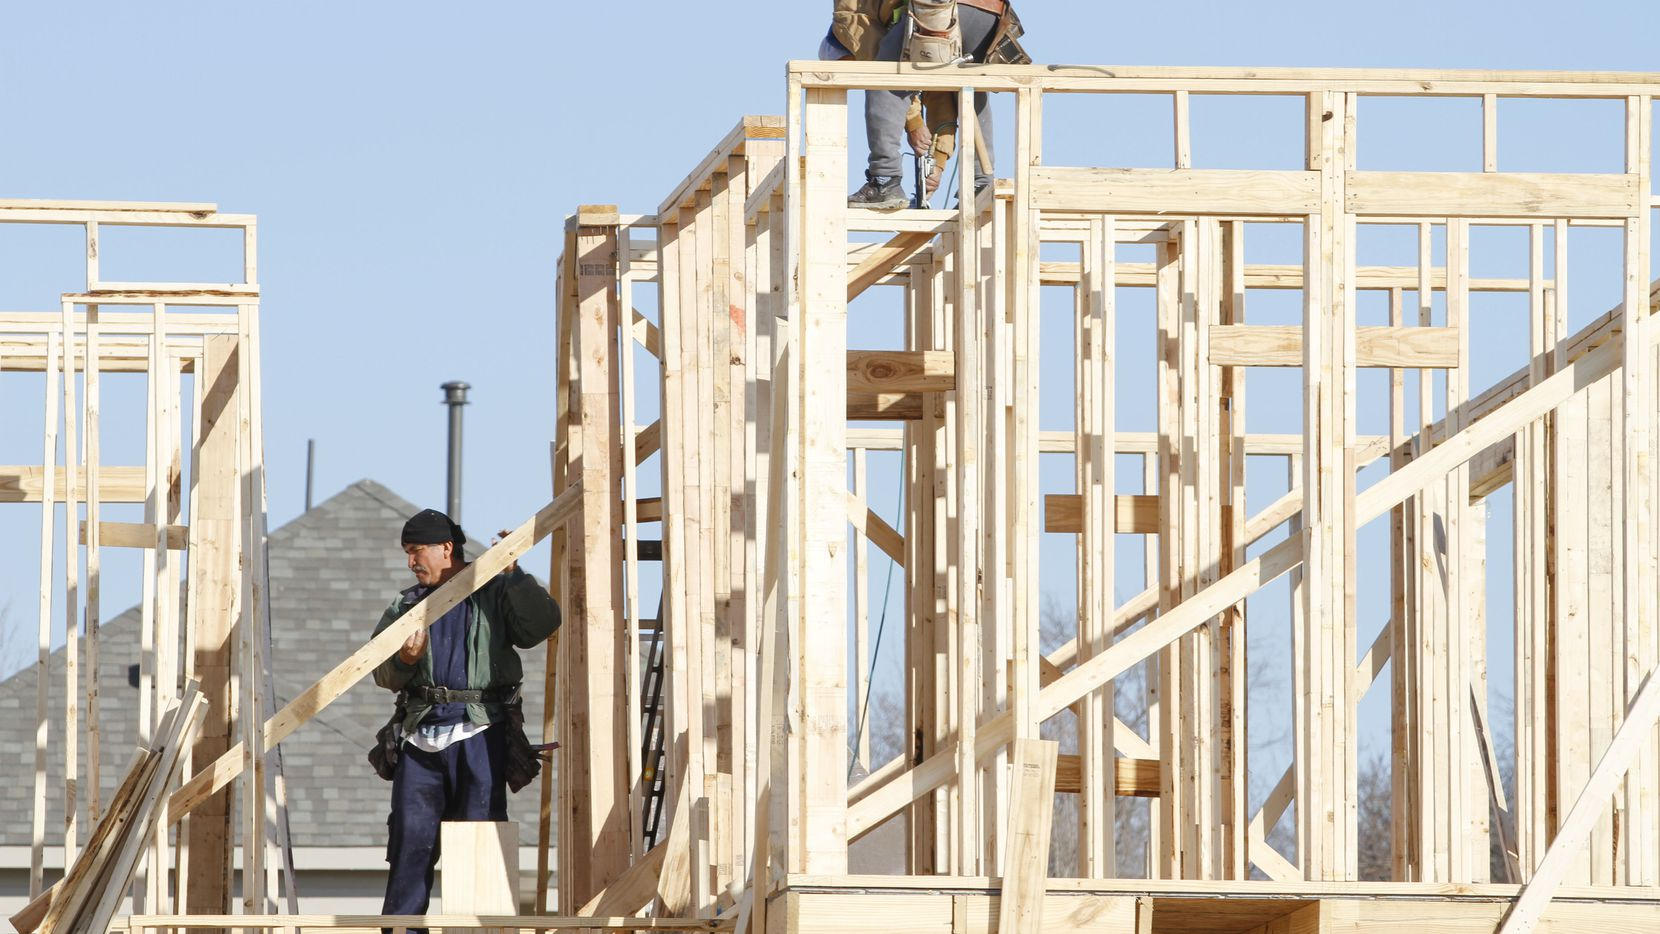 Builders started more than 10,000 D-FW homes in the first quarter